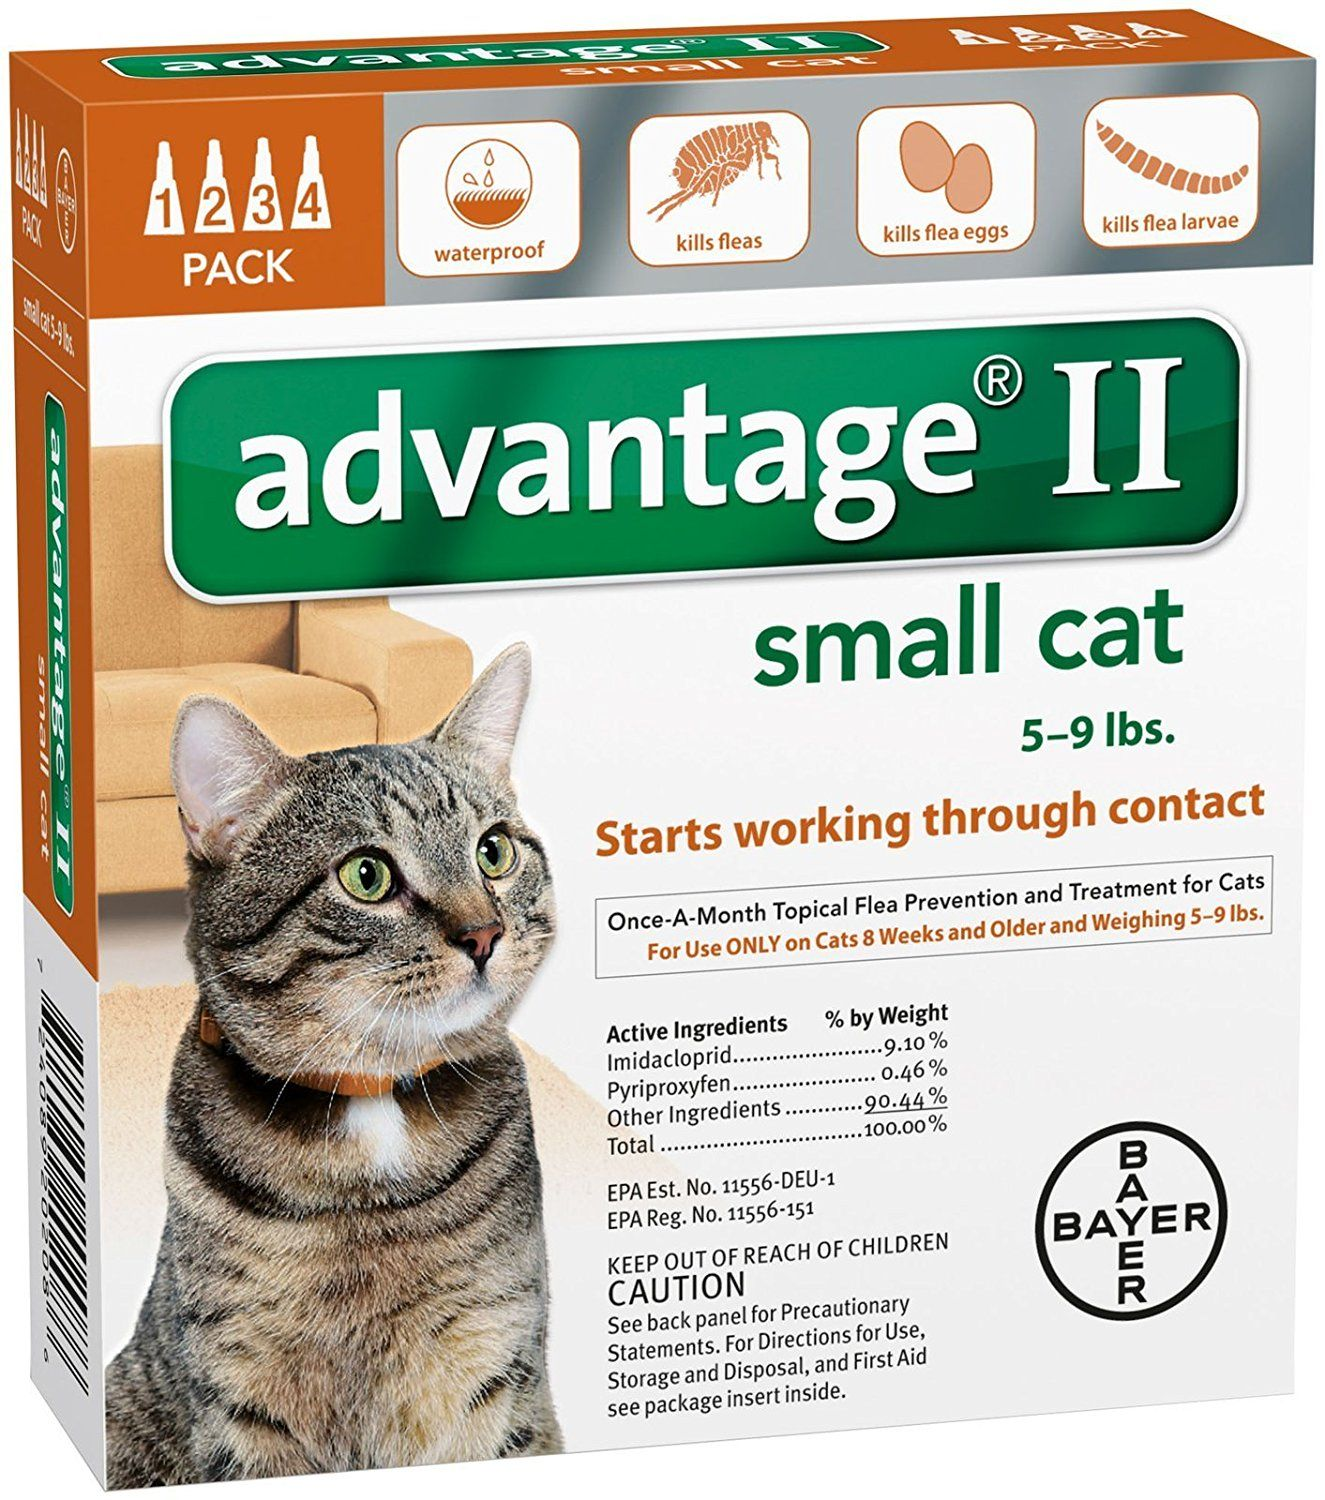 Advantage Ii Small Cat 4 Pack Trust Me This Is Great Click The Image This Is An Affiliate Flea Treatment For Kittens Flea Control For Cats Advantage Flea